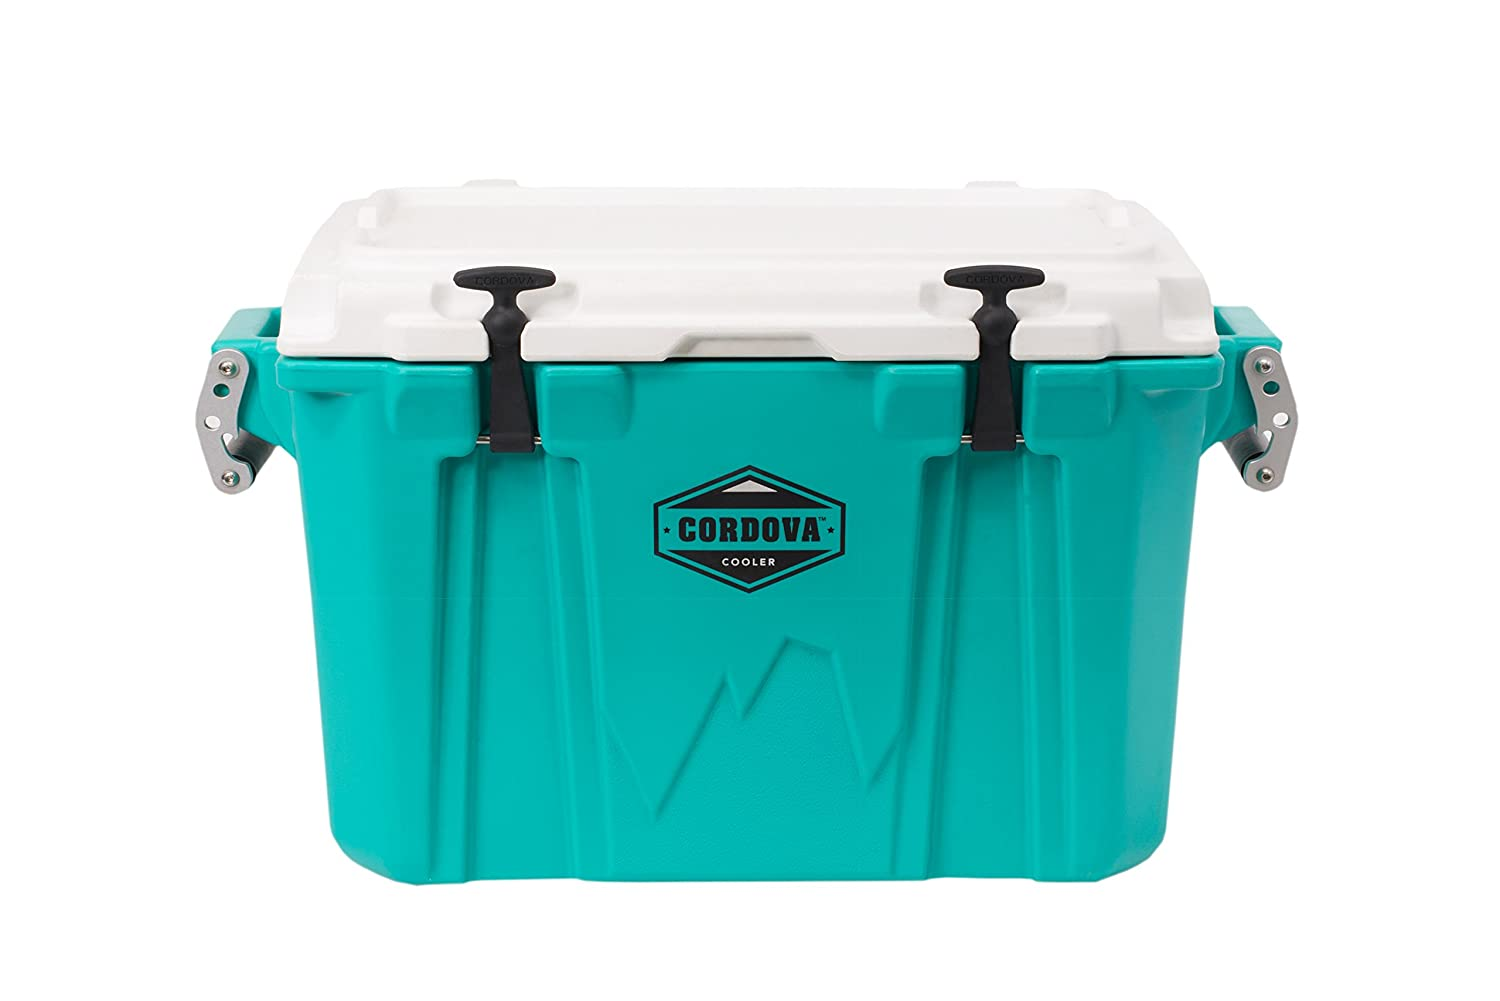 Cordova 50 Medium Cooler - Hard Sided Rotomolded Ice Chest with 48 Quart Capacity & Built in Bottle Opener